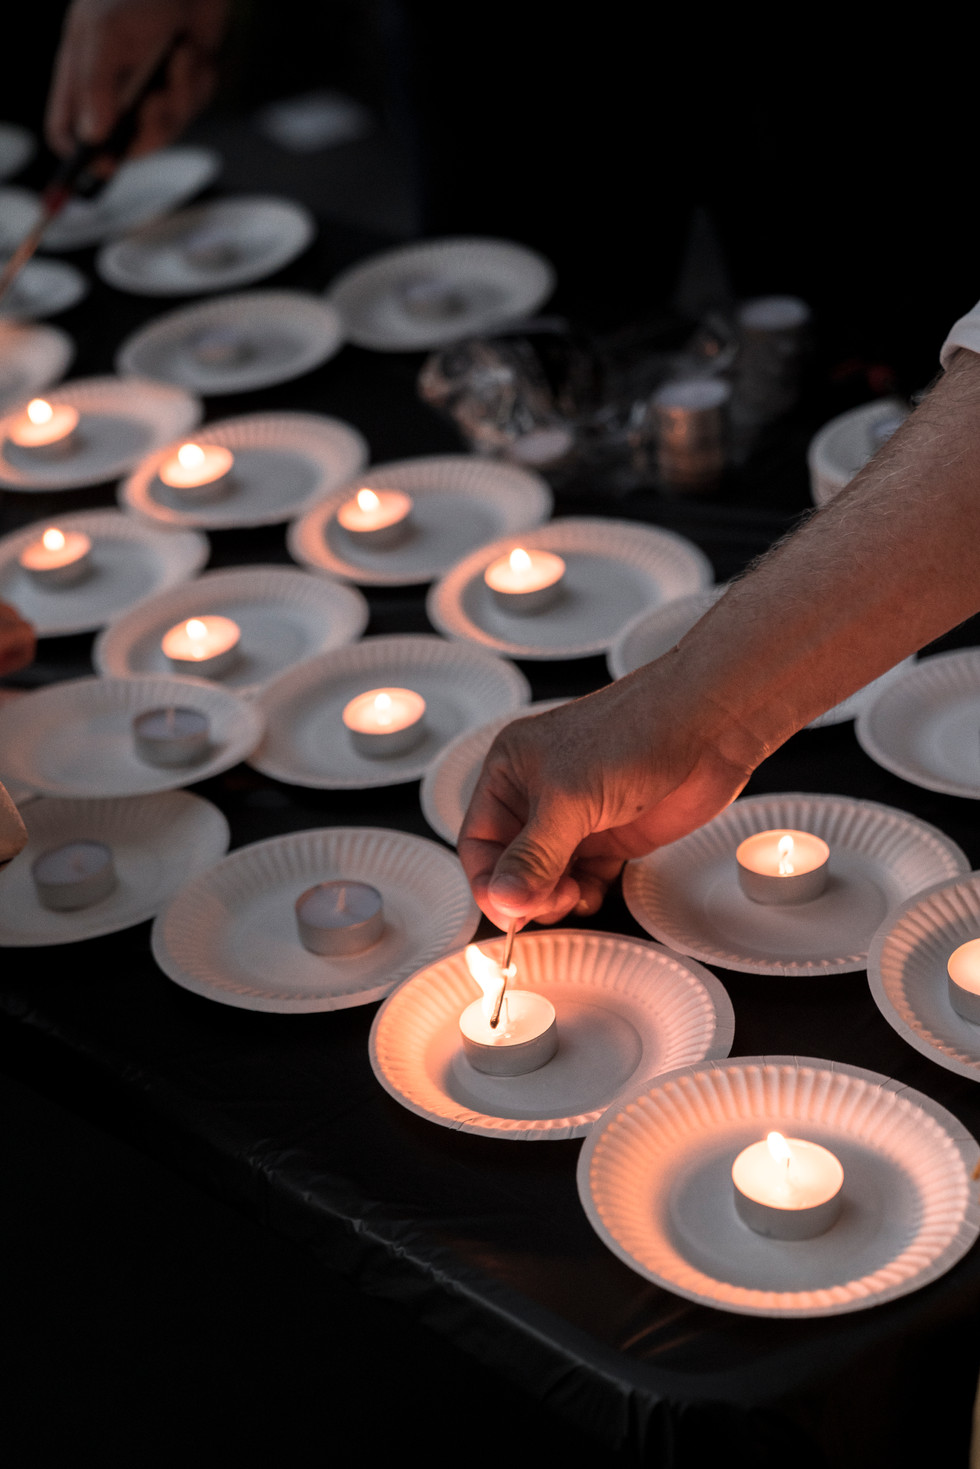 Vietnamese Association of Arizona members light candles for a memorial for John McCain at his office in Phoenix, Arizona on Sunday, August 26, 2018.